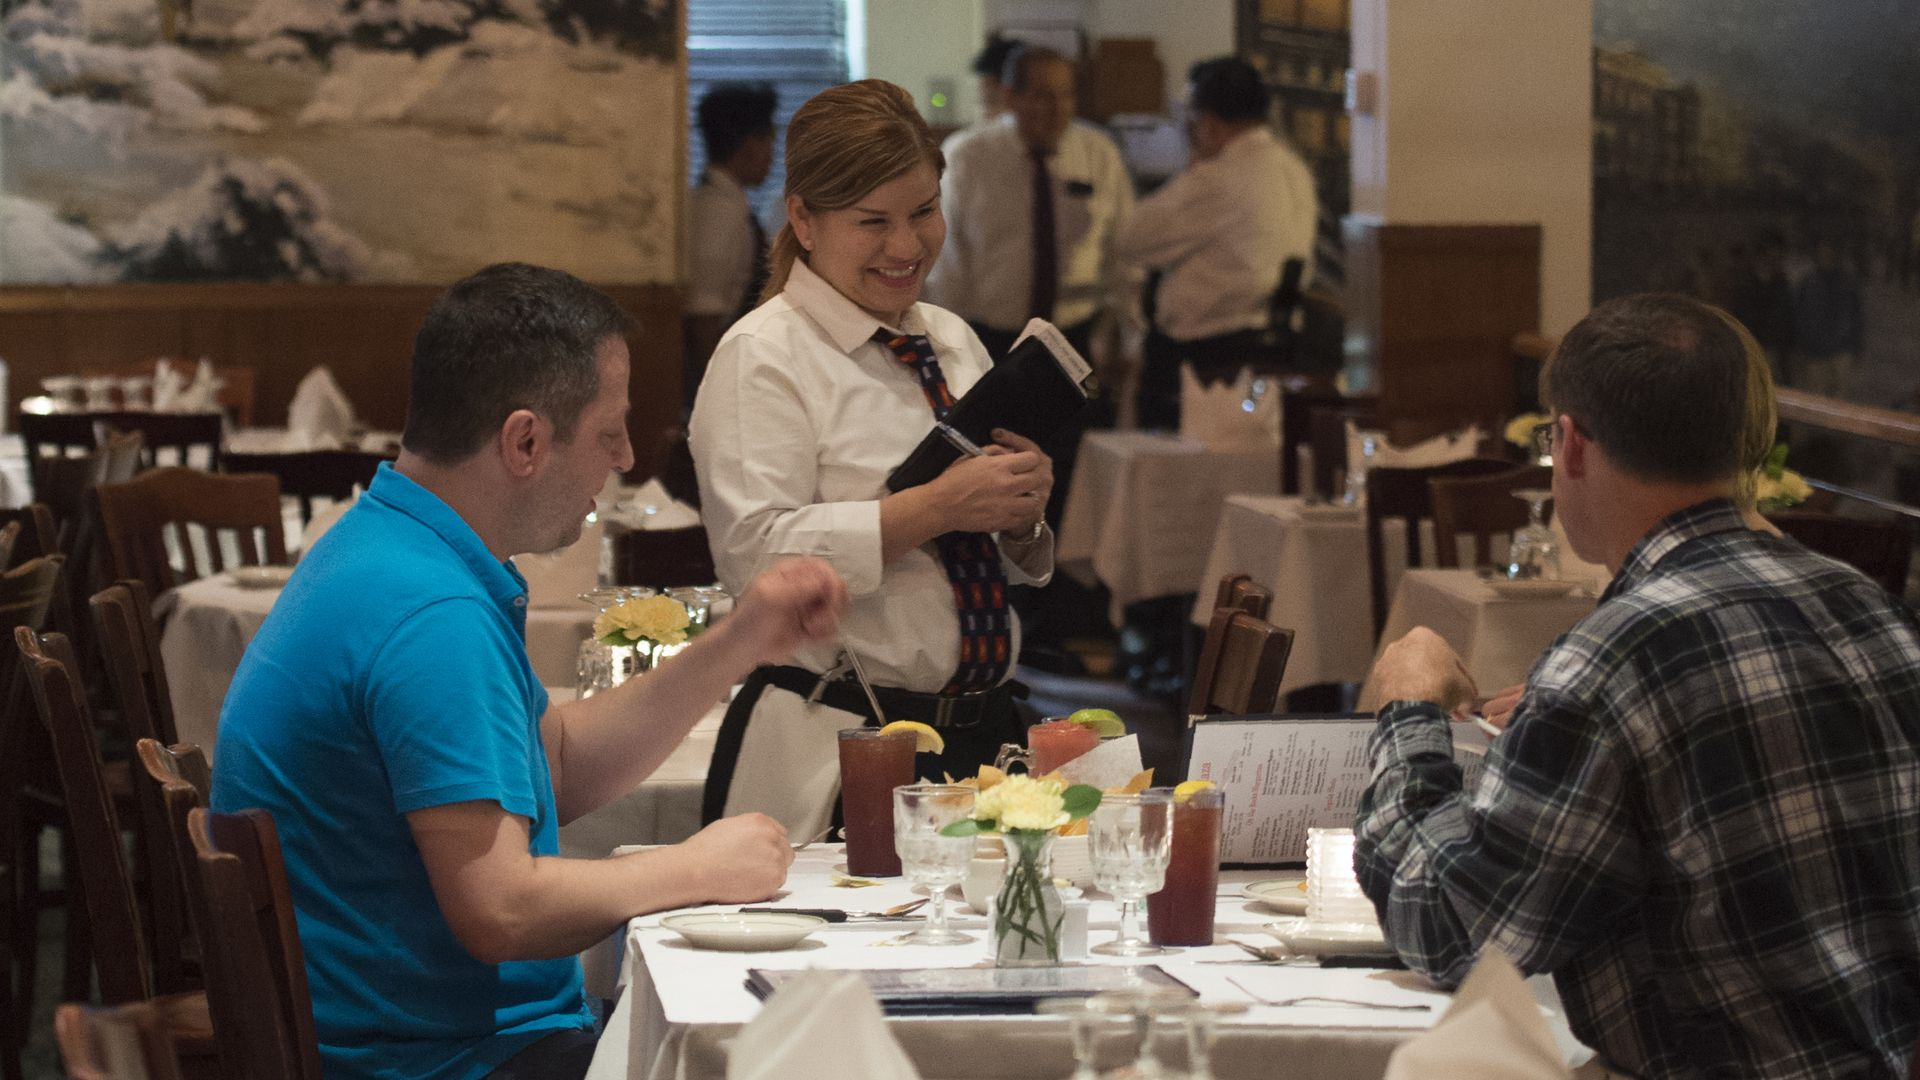 A waitress takes takes orders at the Salvadorian and Latin American restaurant in Washington, DC.